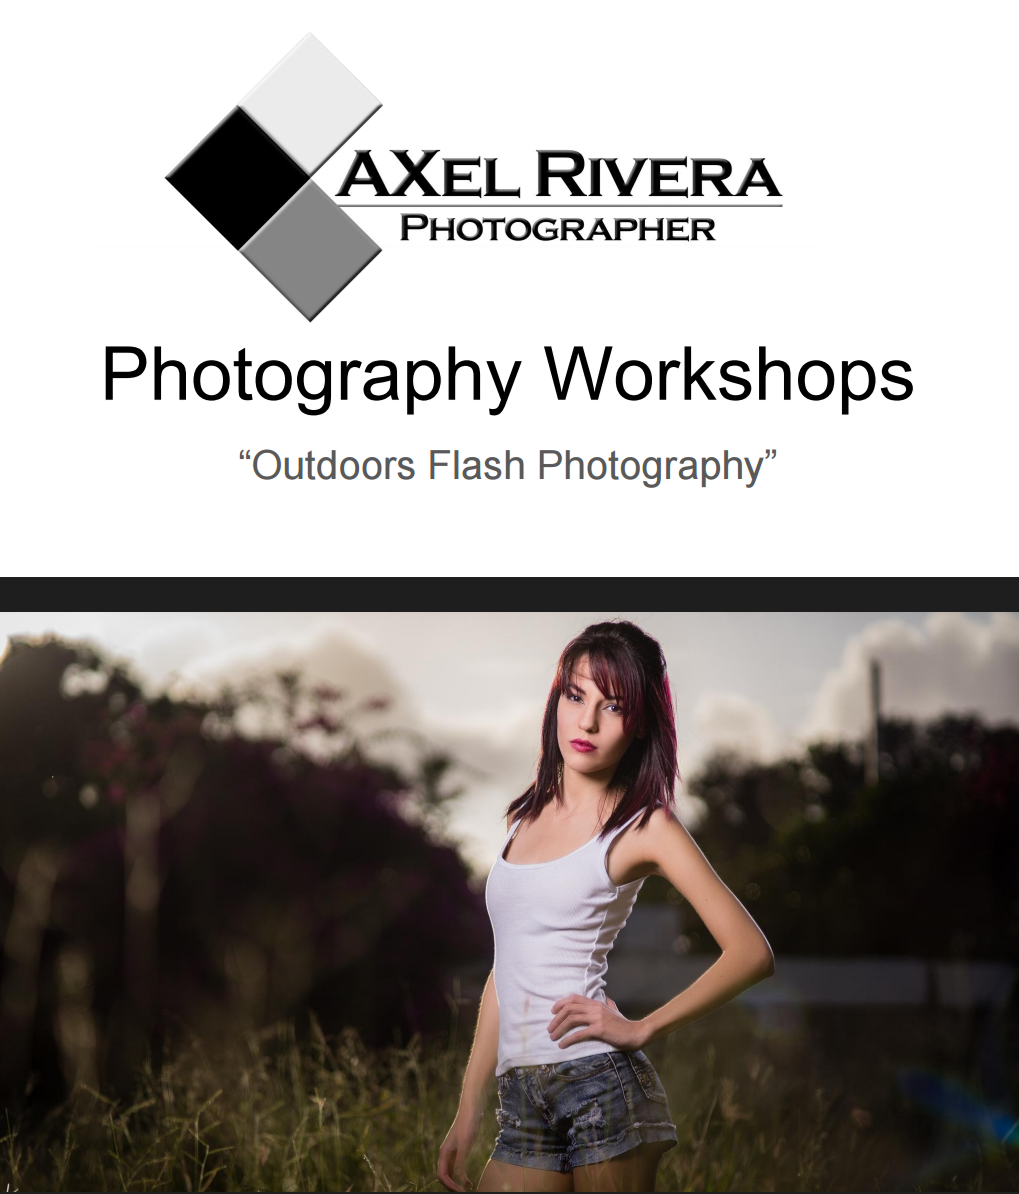 Axel Rivera Photography Workshops